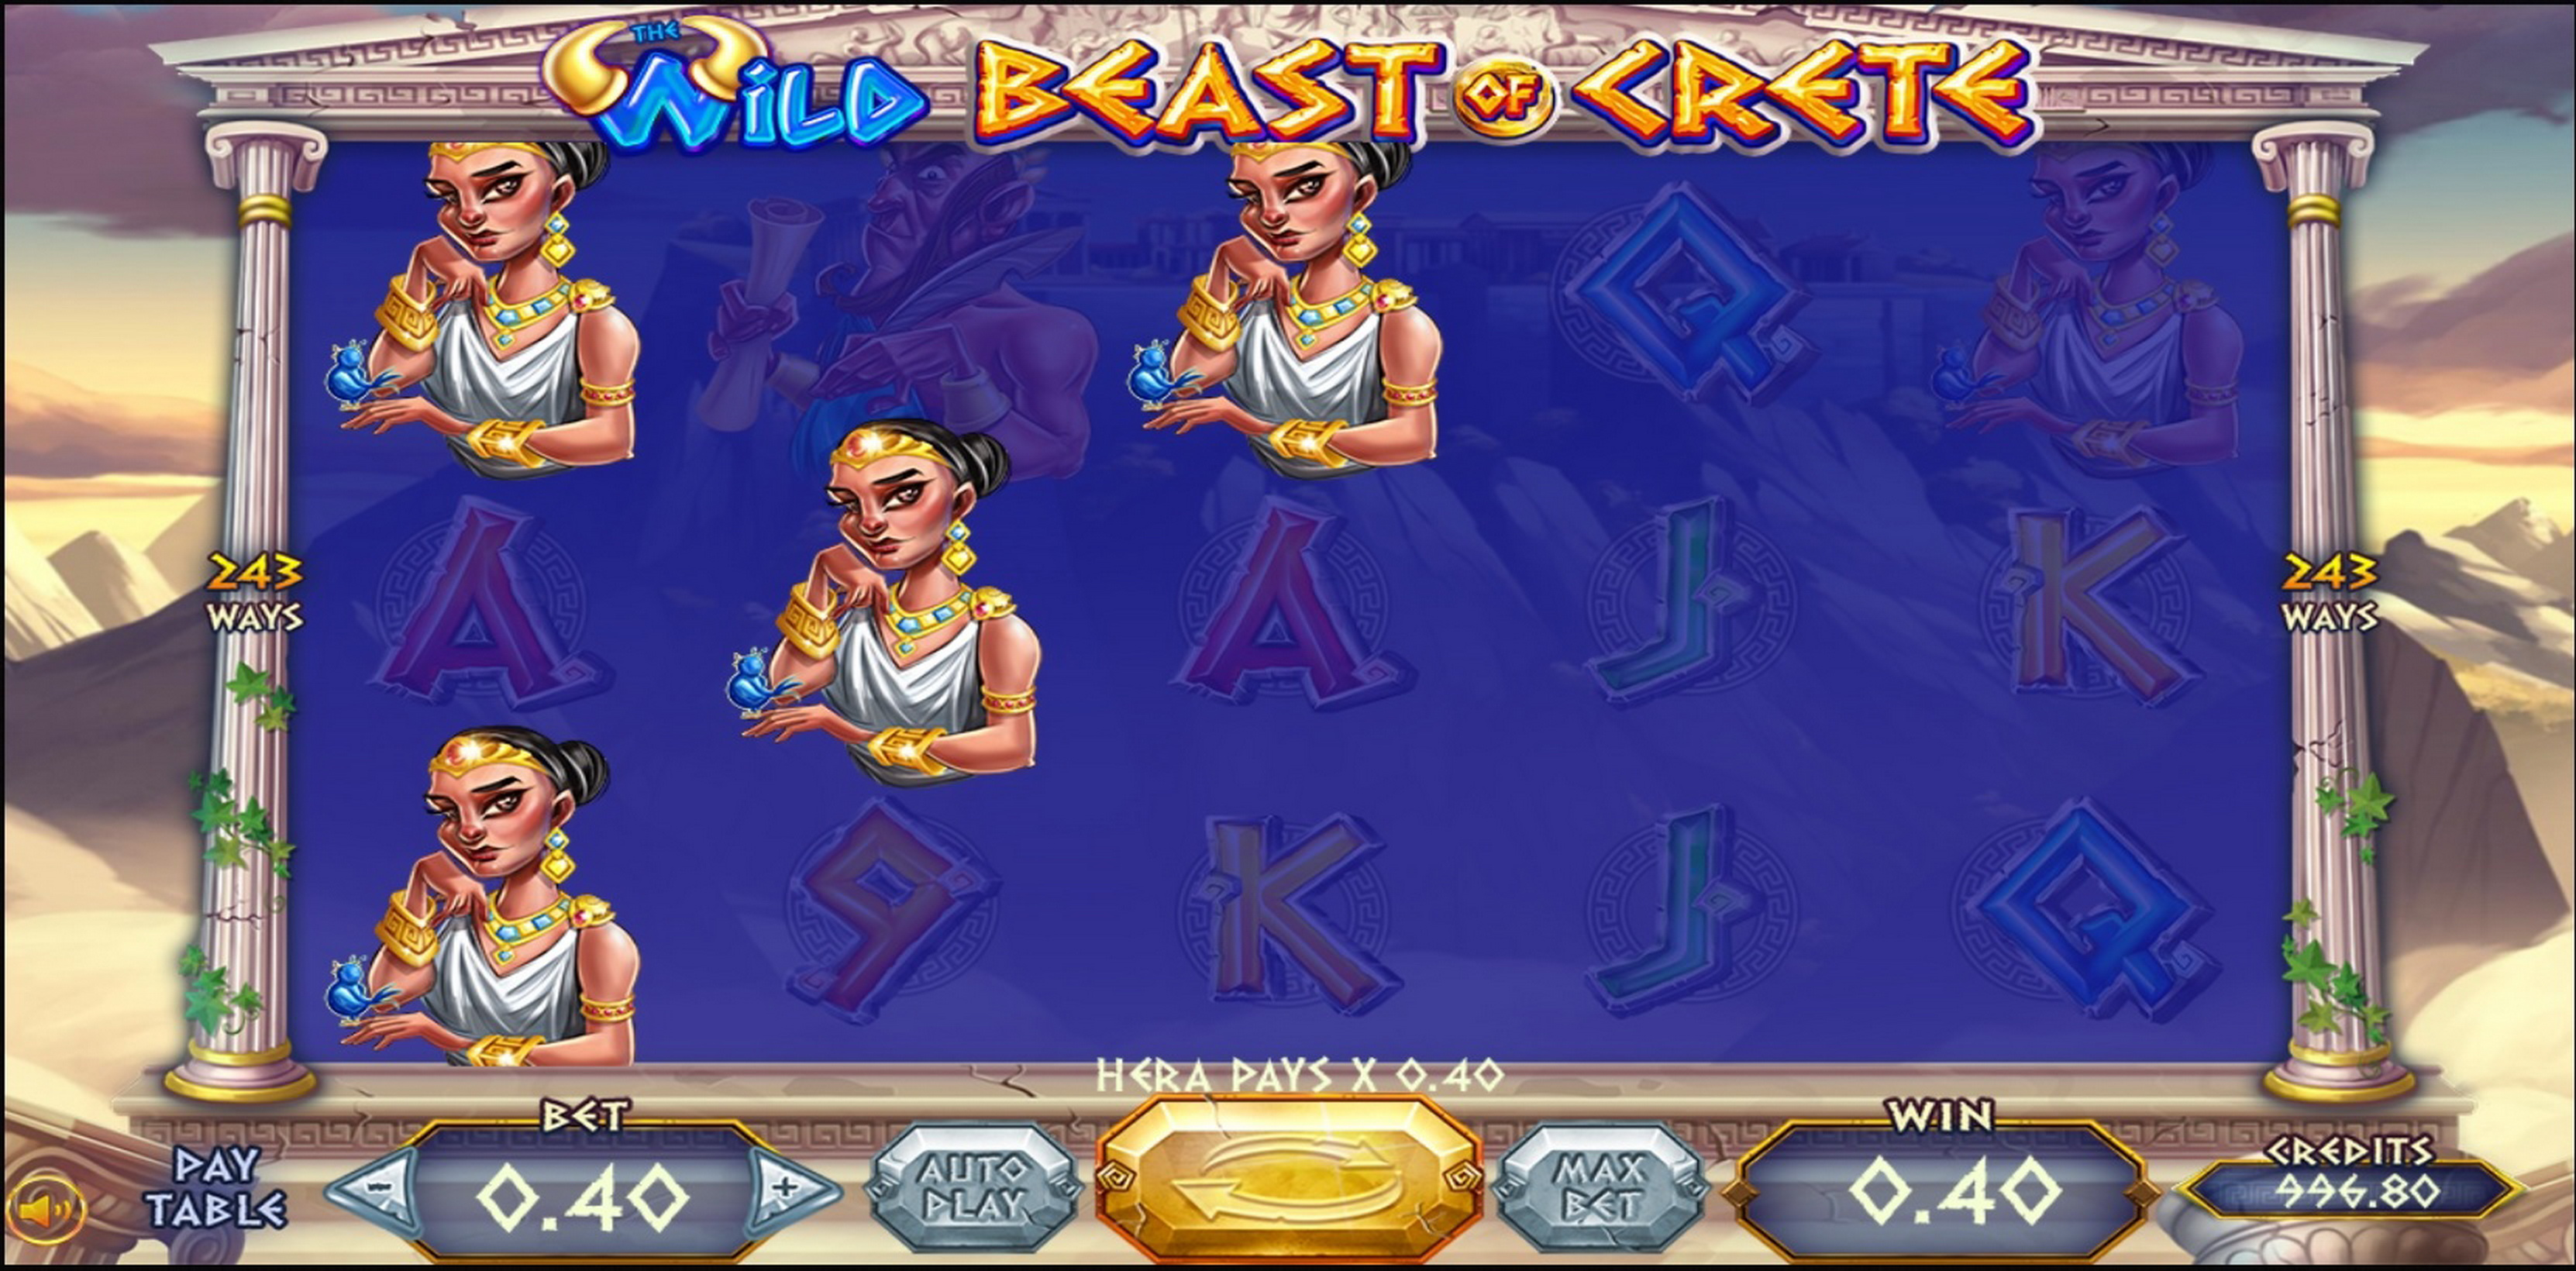 Win Money in Wild Beast of Crete Free Slot Game by Felix Gaming